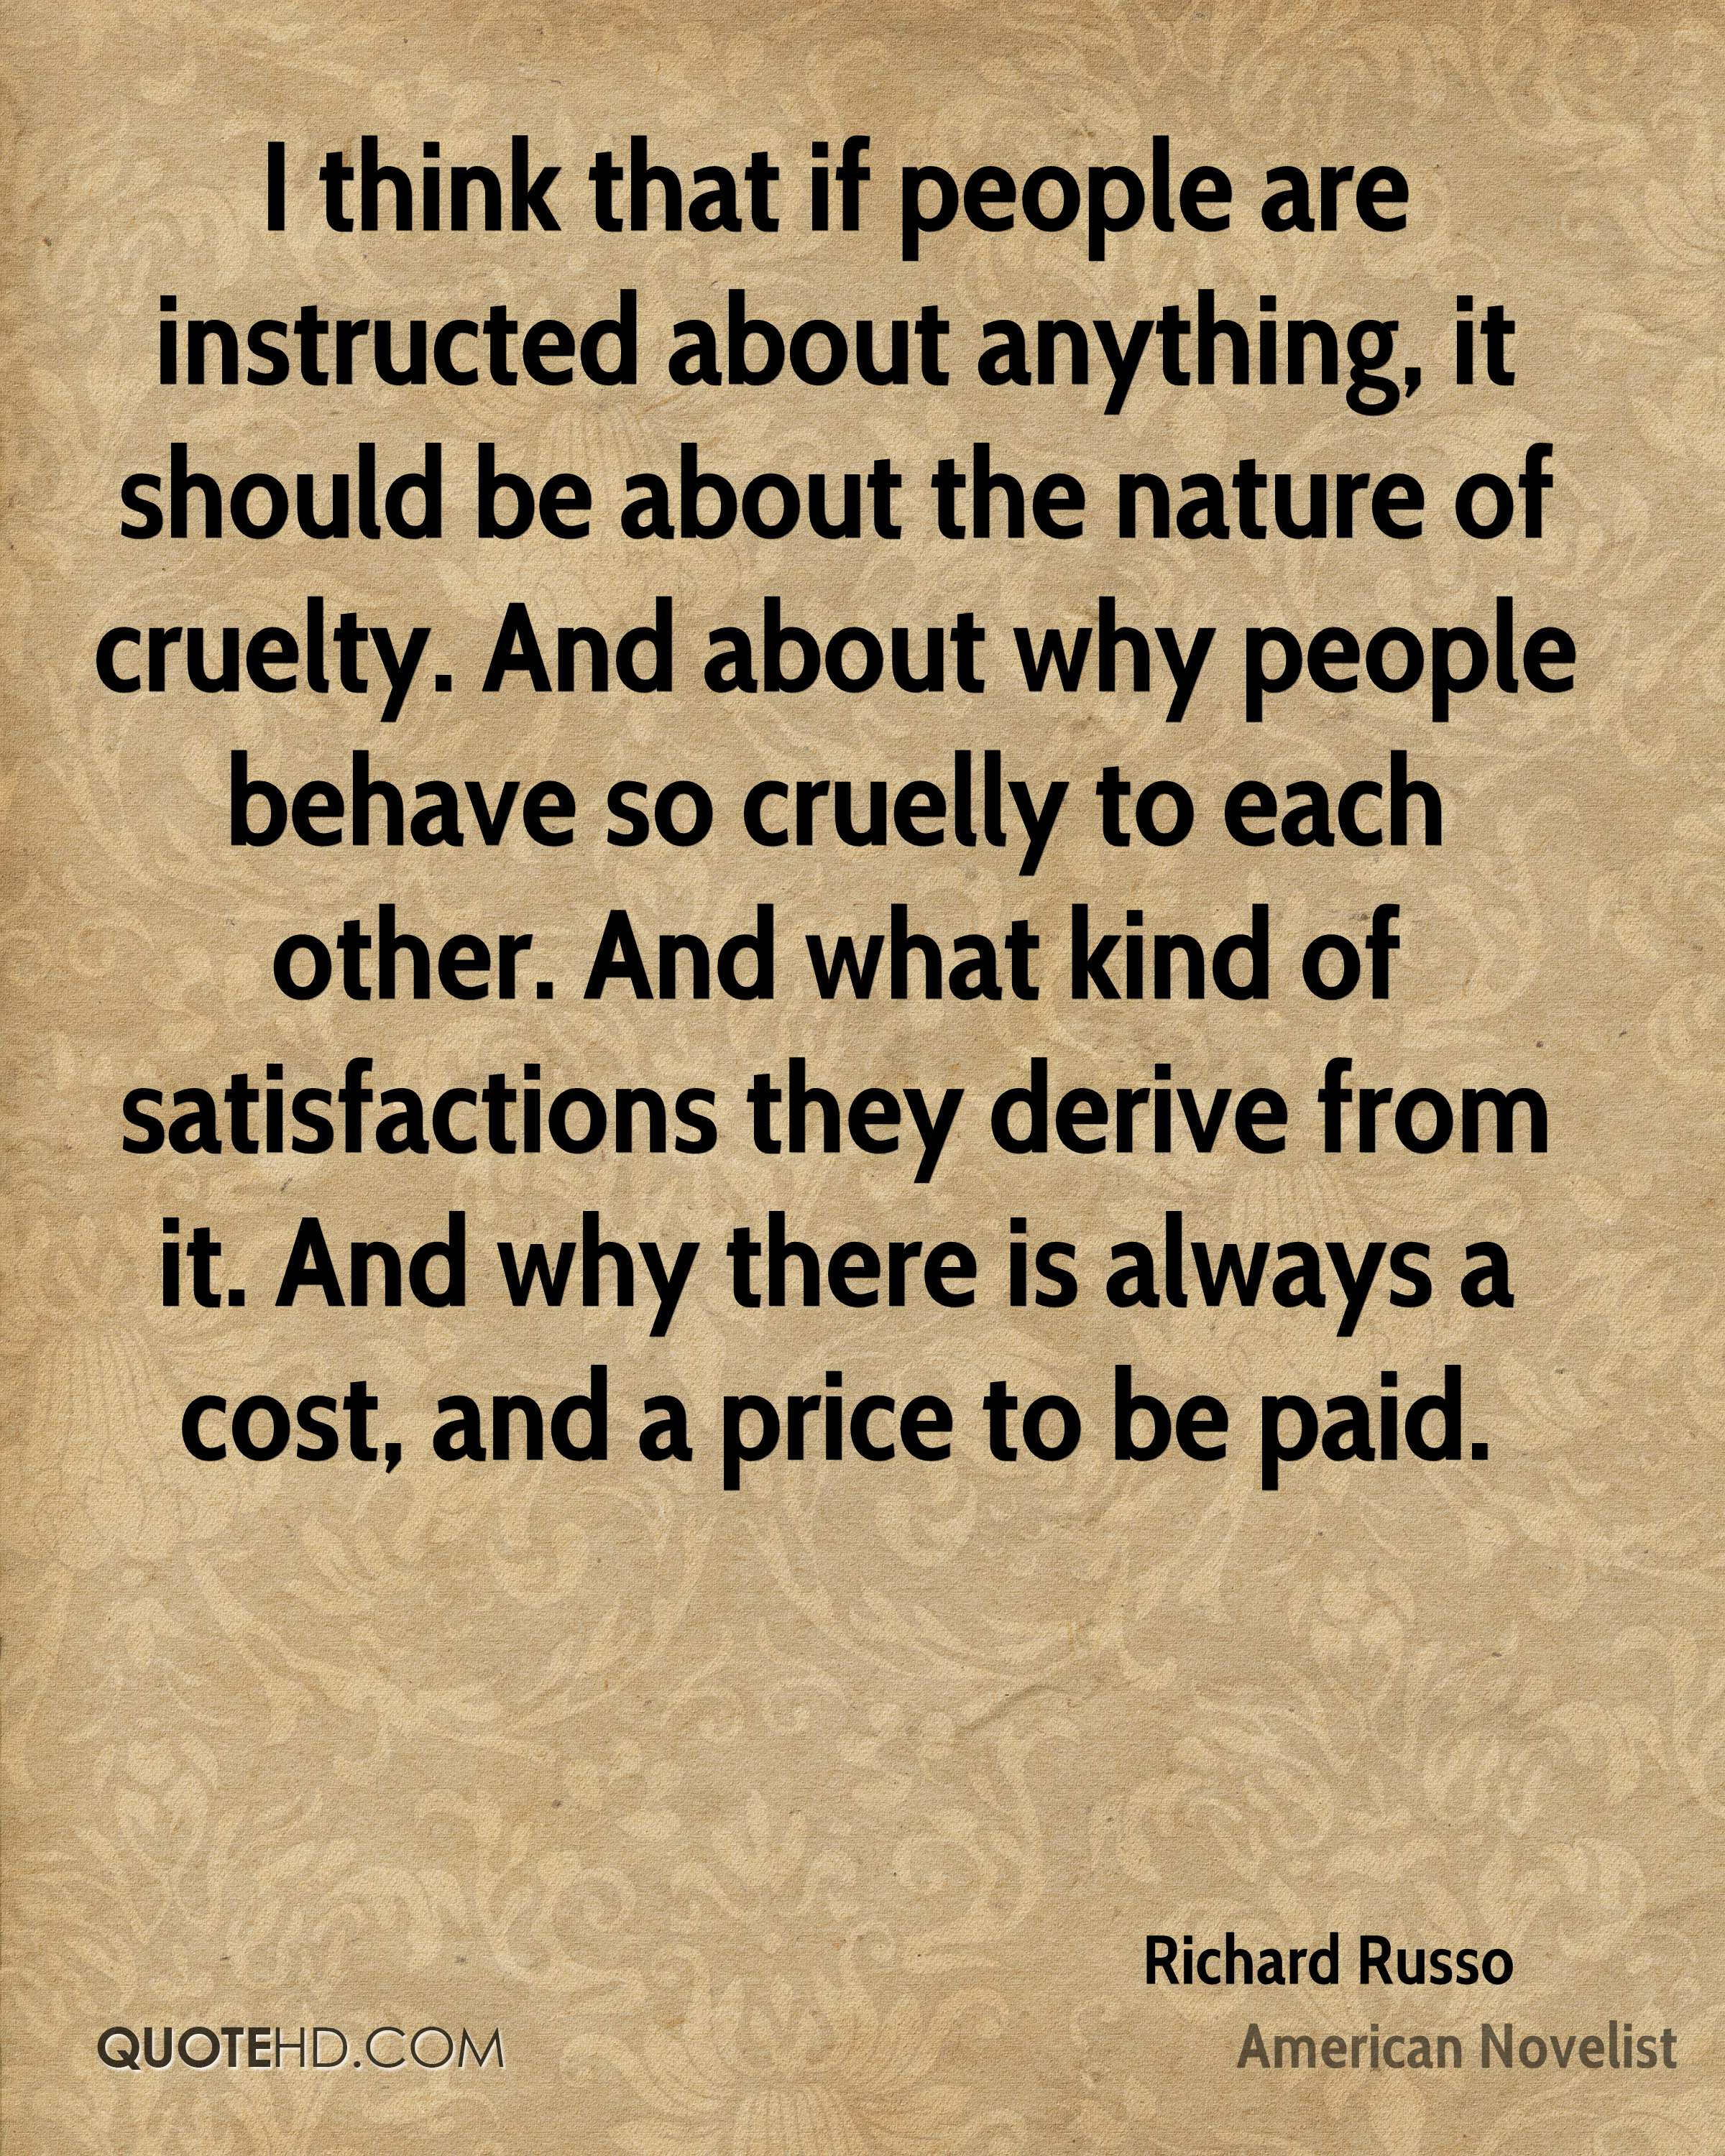 I think that if people are instructed about anything, it should be about the nature of cruelty. And about why people behave so cruelly to each other. And what kind of satisfactions they derive from it. And why there is always a cost, and a price to be paid.